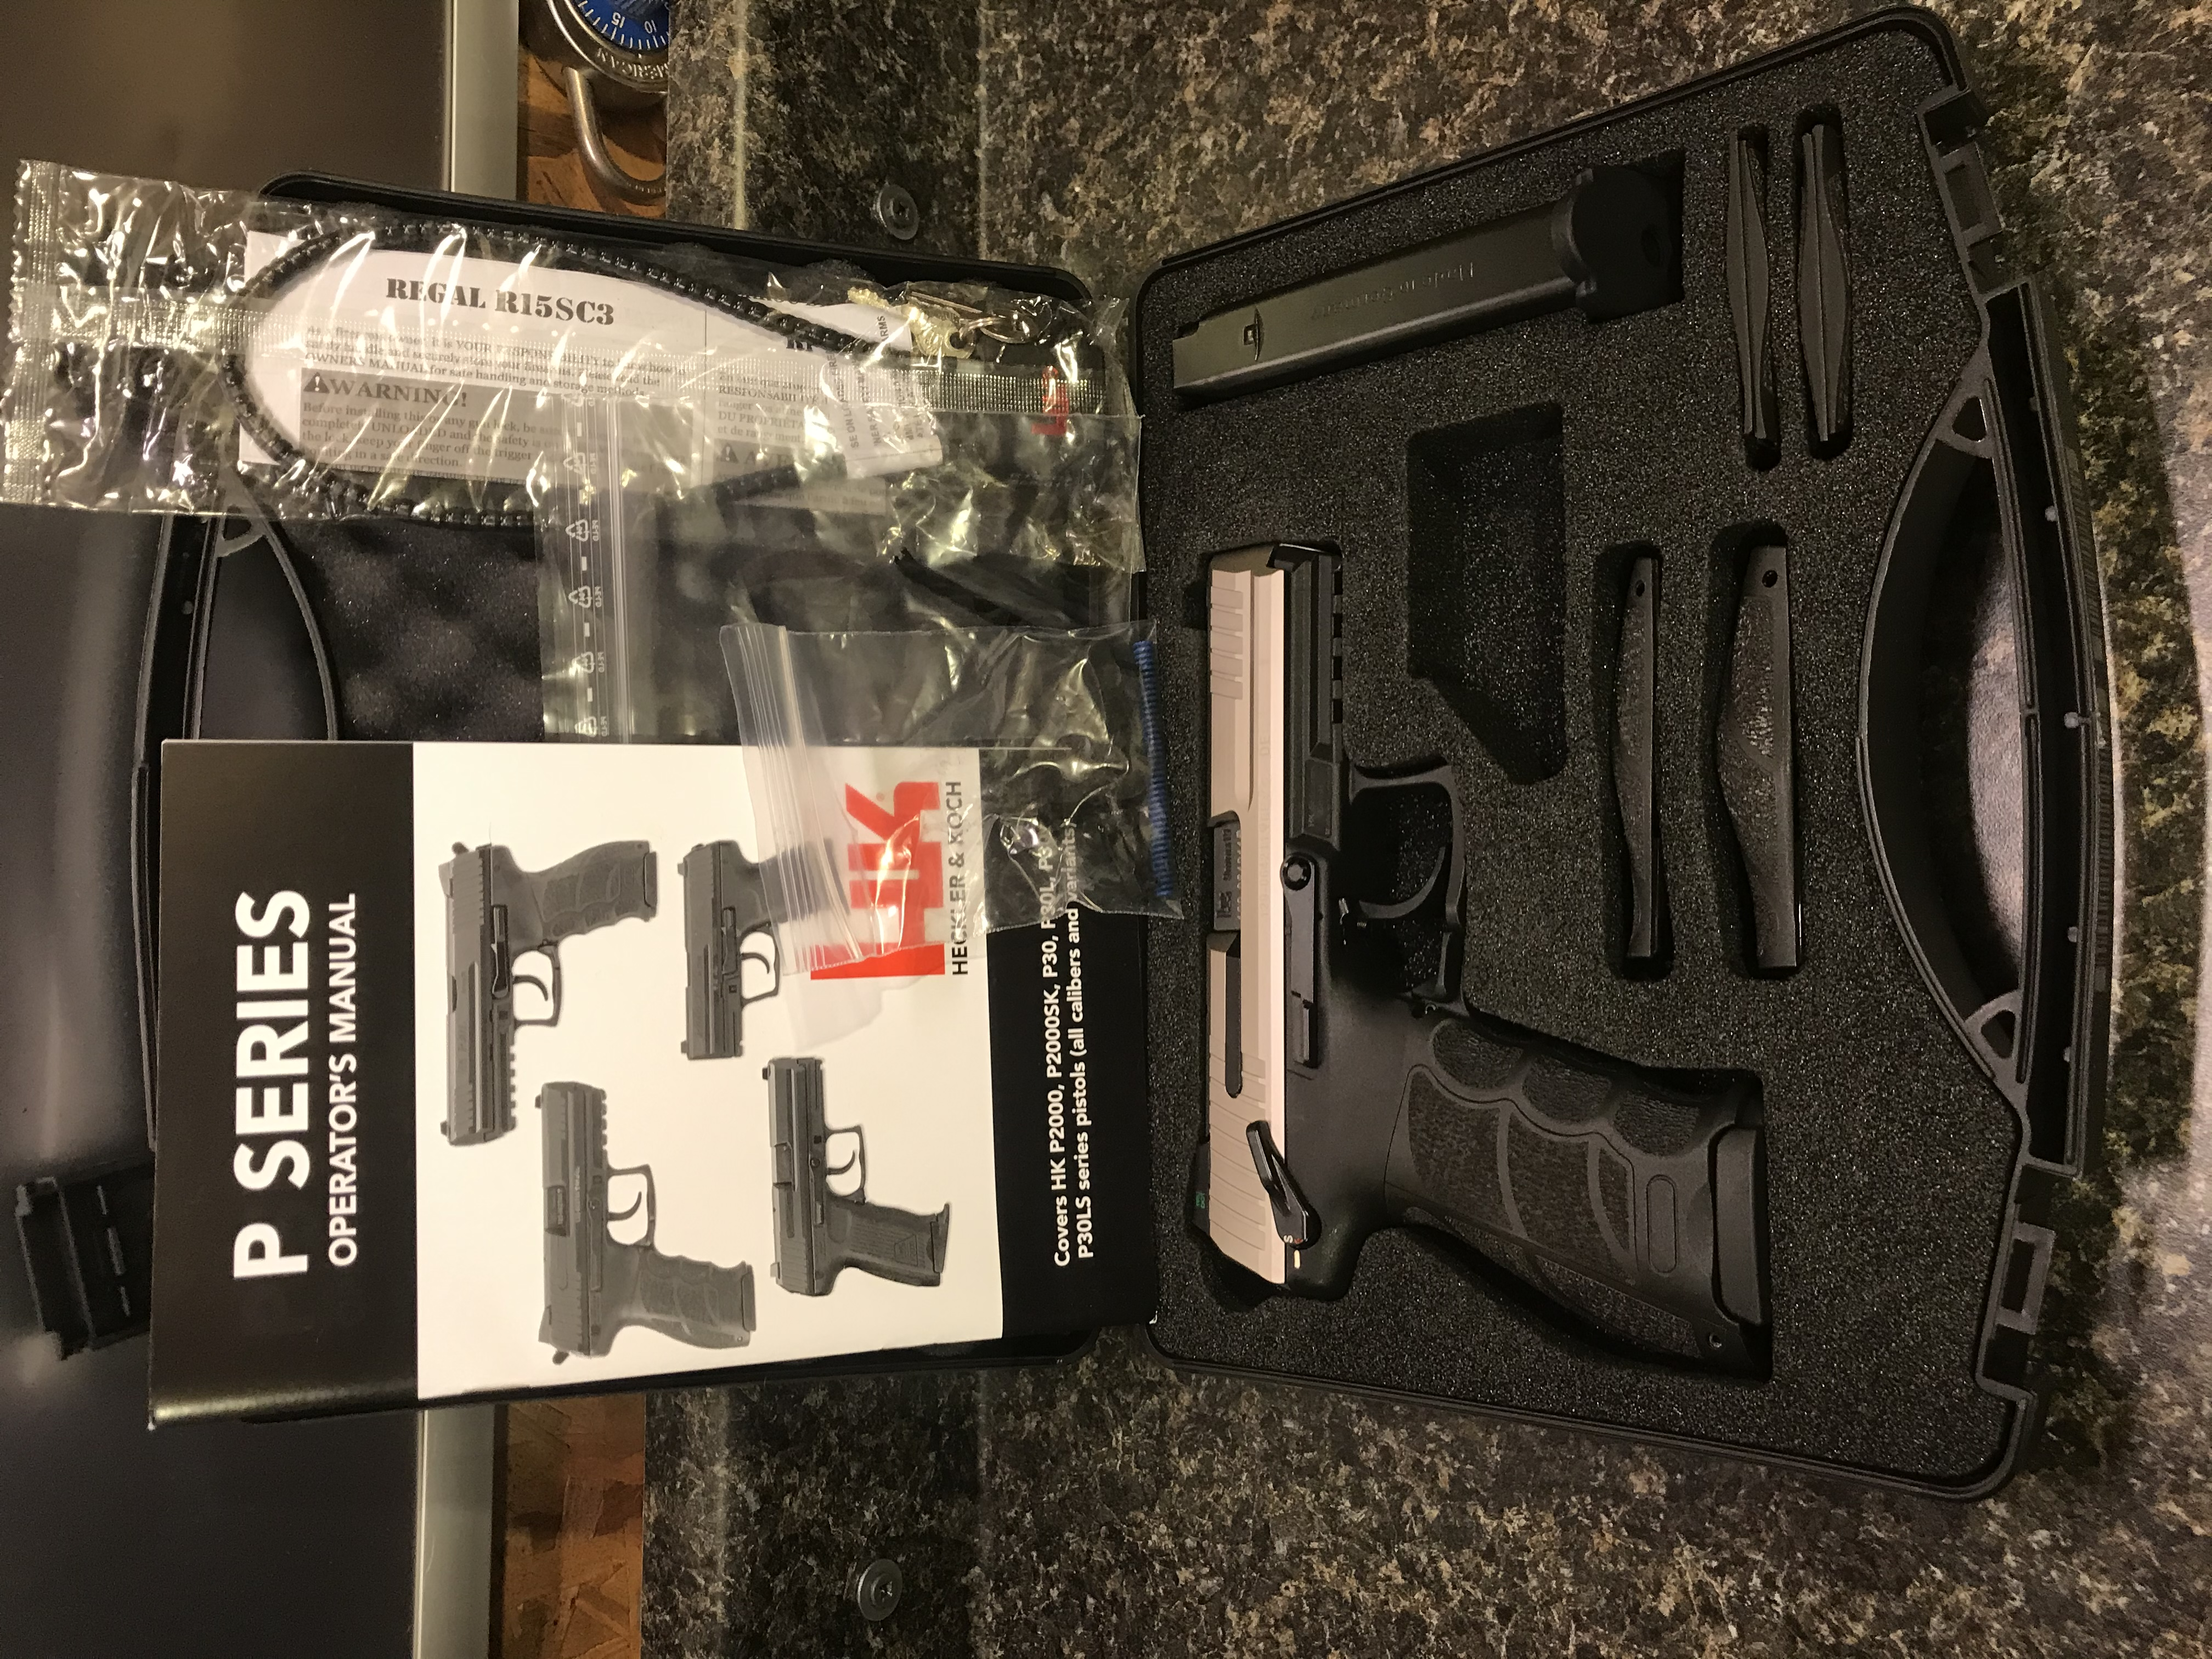 WTS: HK P30S, 9mm, custom finish, rare LEM with manual safety and night sights-a40617bd-4c92-4be7-96ab-f6fbb64718a3.jpeg